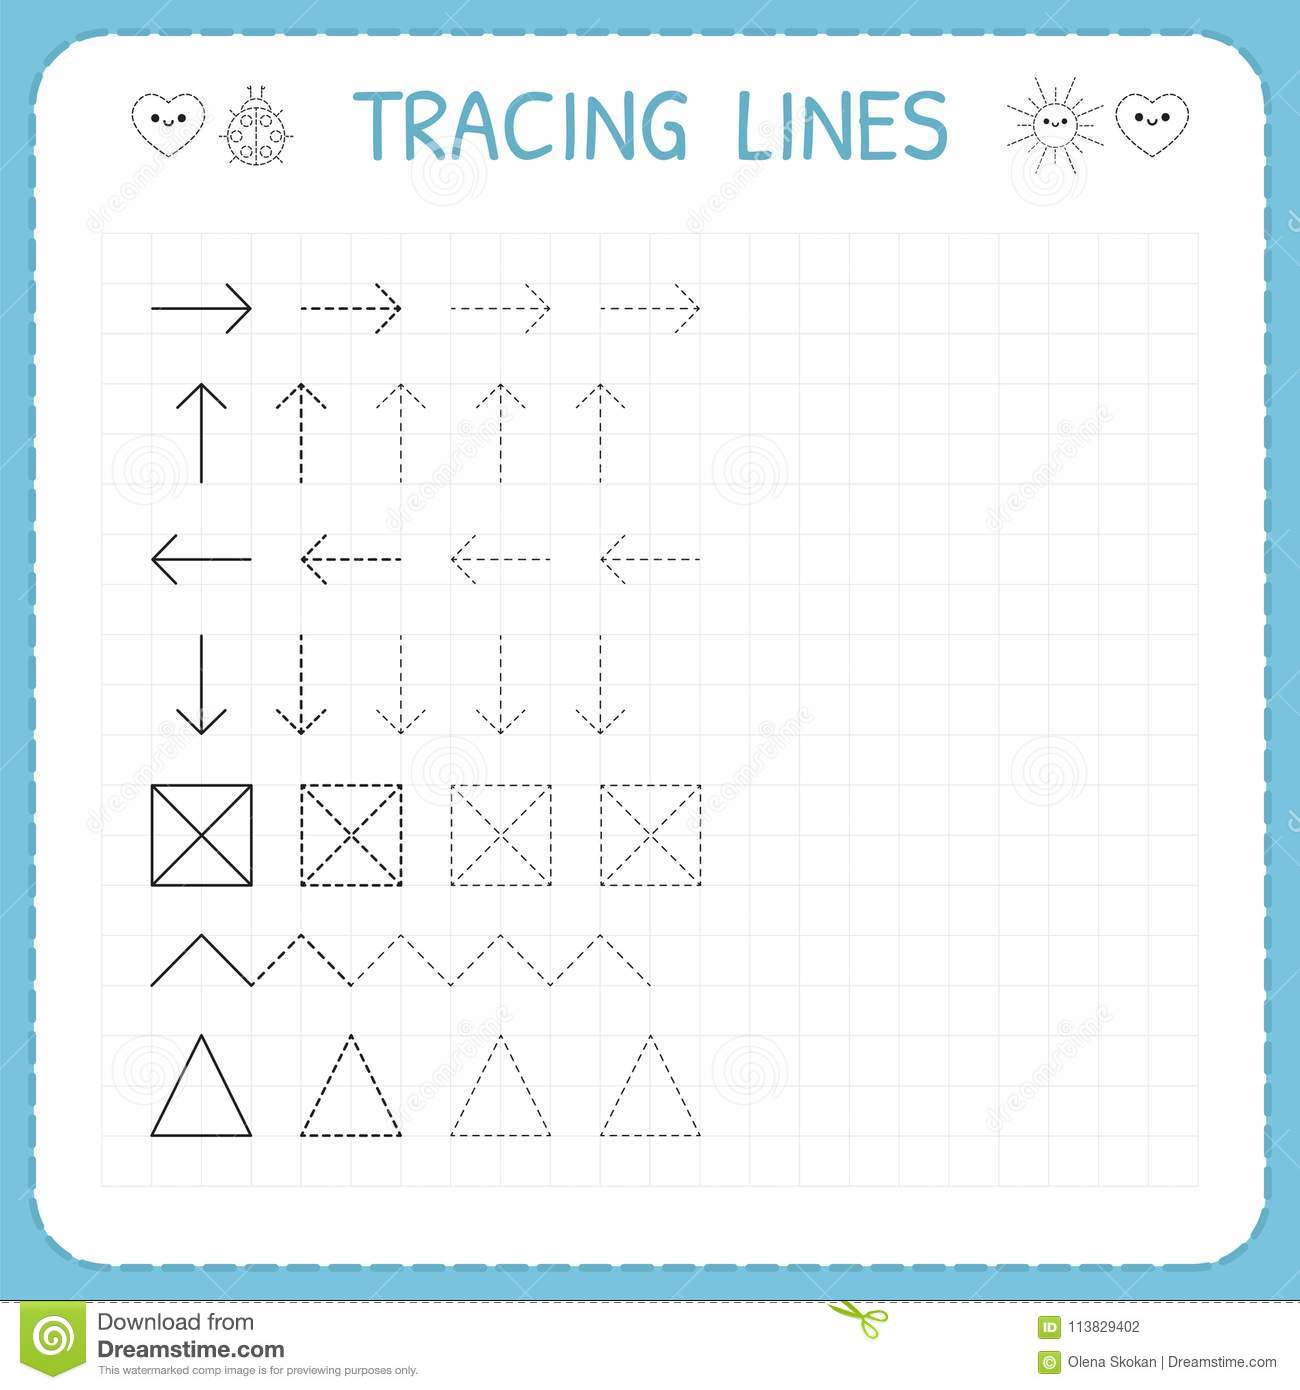 Tracing Lines Working Pages For Children Preschool Or Kindergarten Worksheets Basic Writing